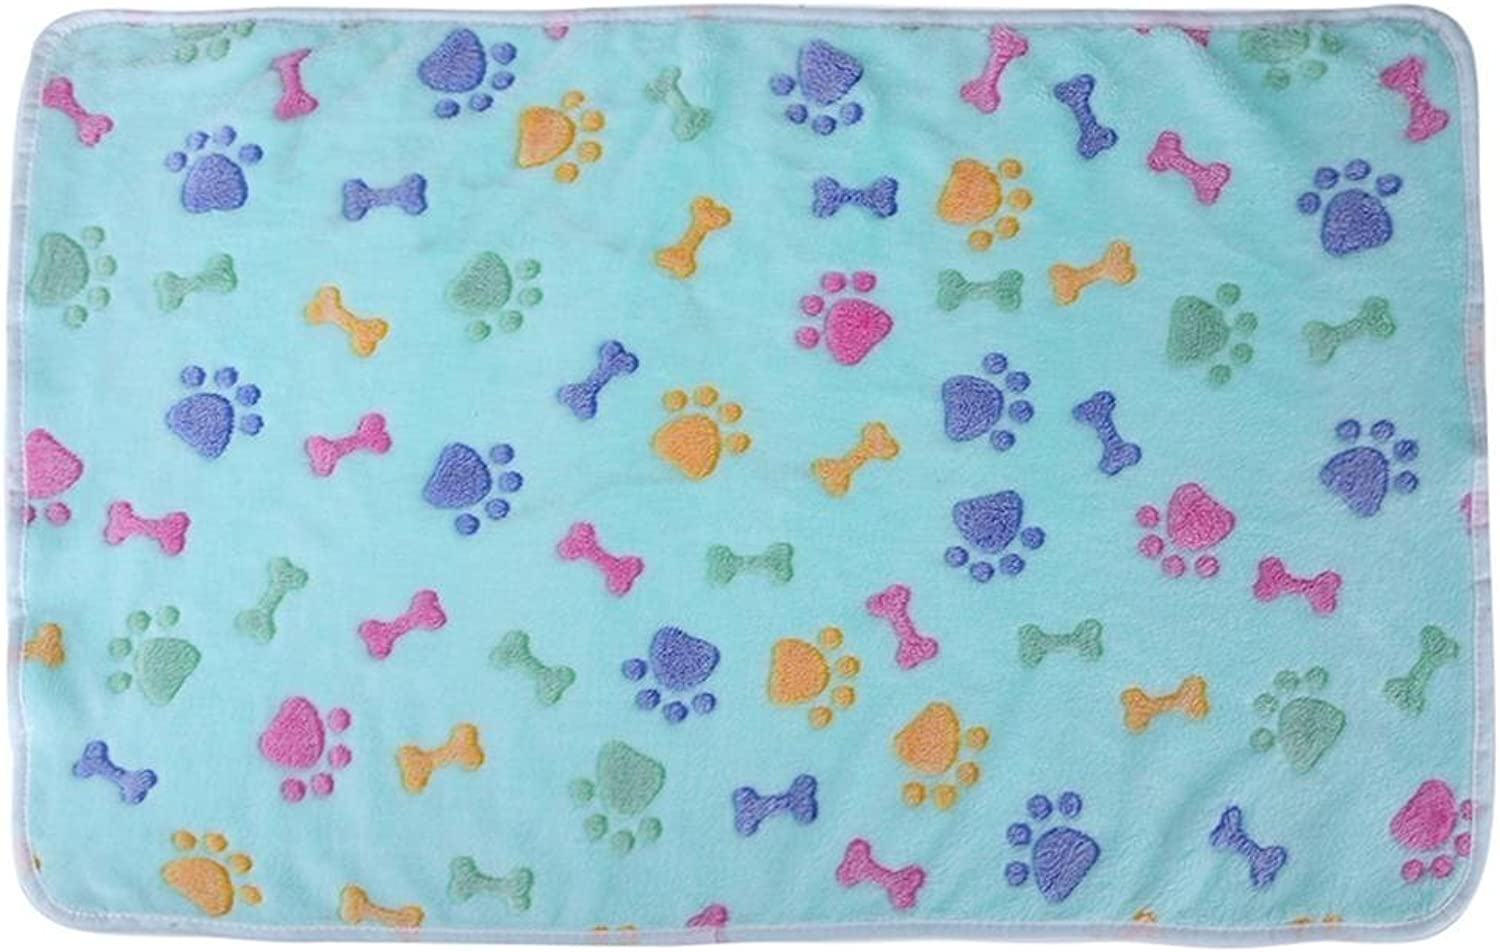 Comfortable and Warm Warm Soft Coral Velvet Pet Blanket Sleep Mat Dog Bed Puppy Cushion(bluee XS)